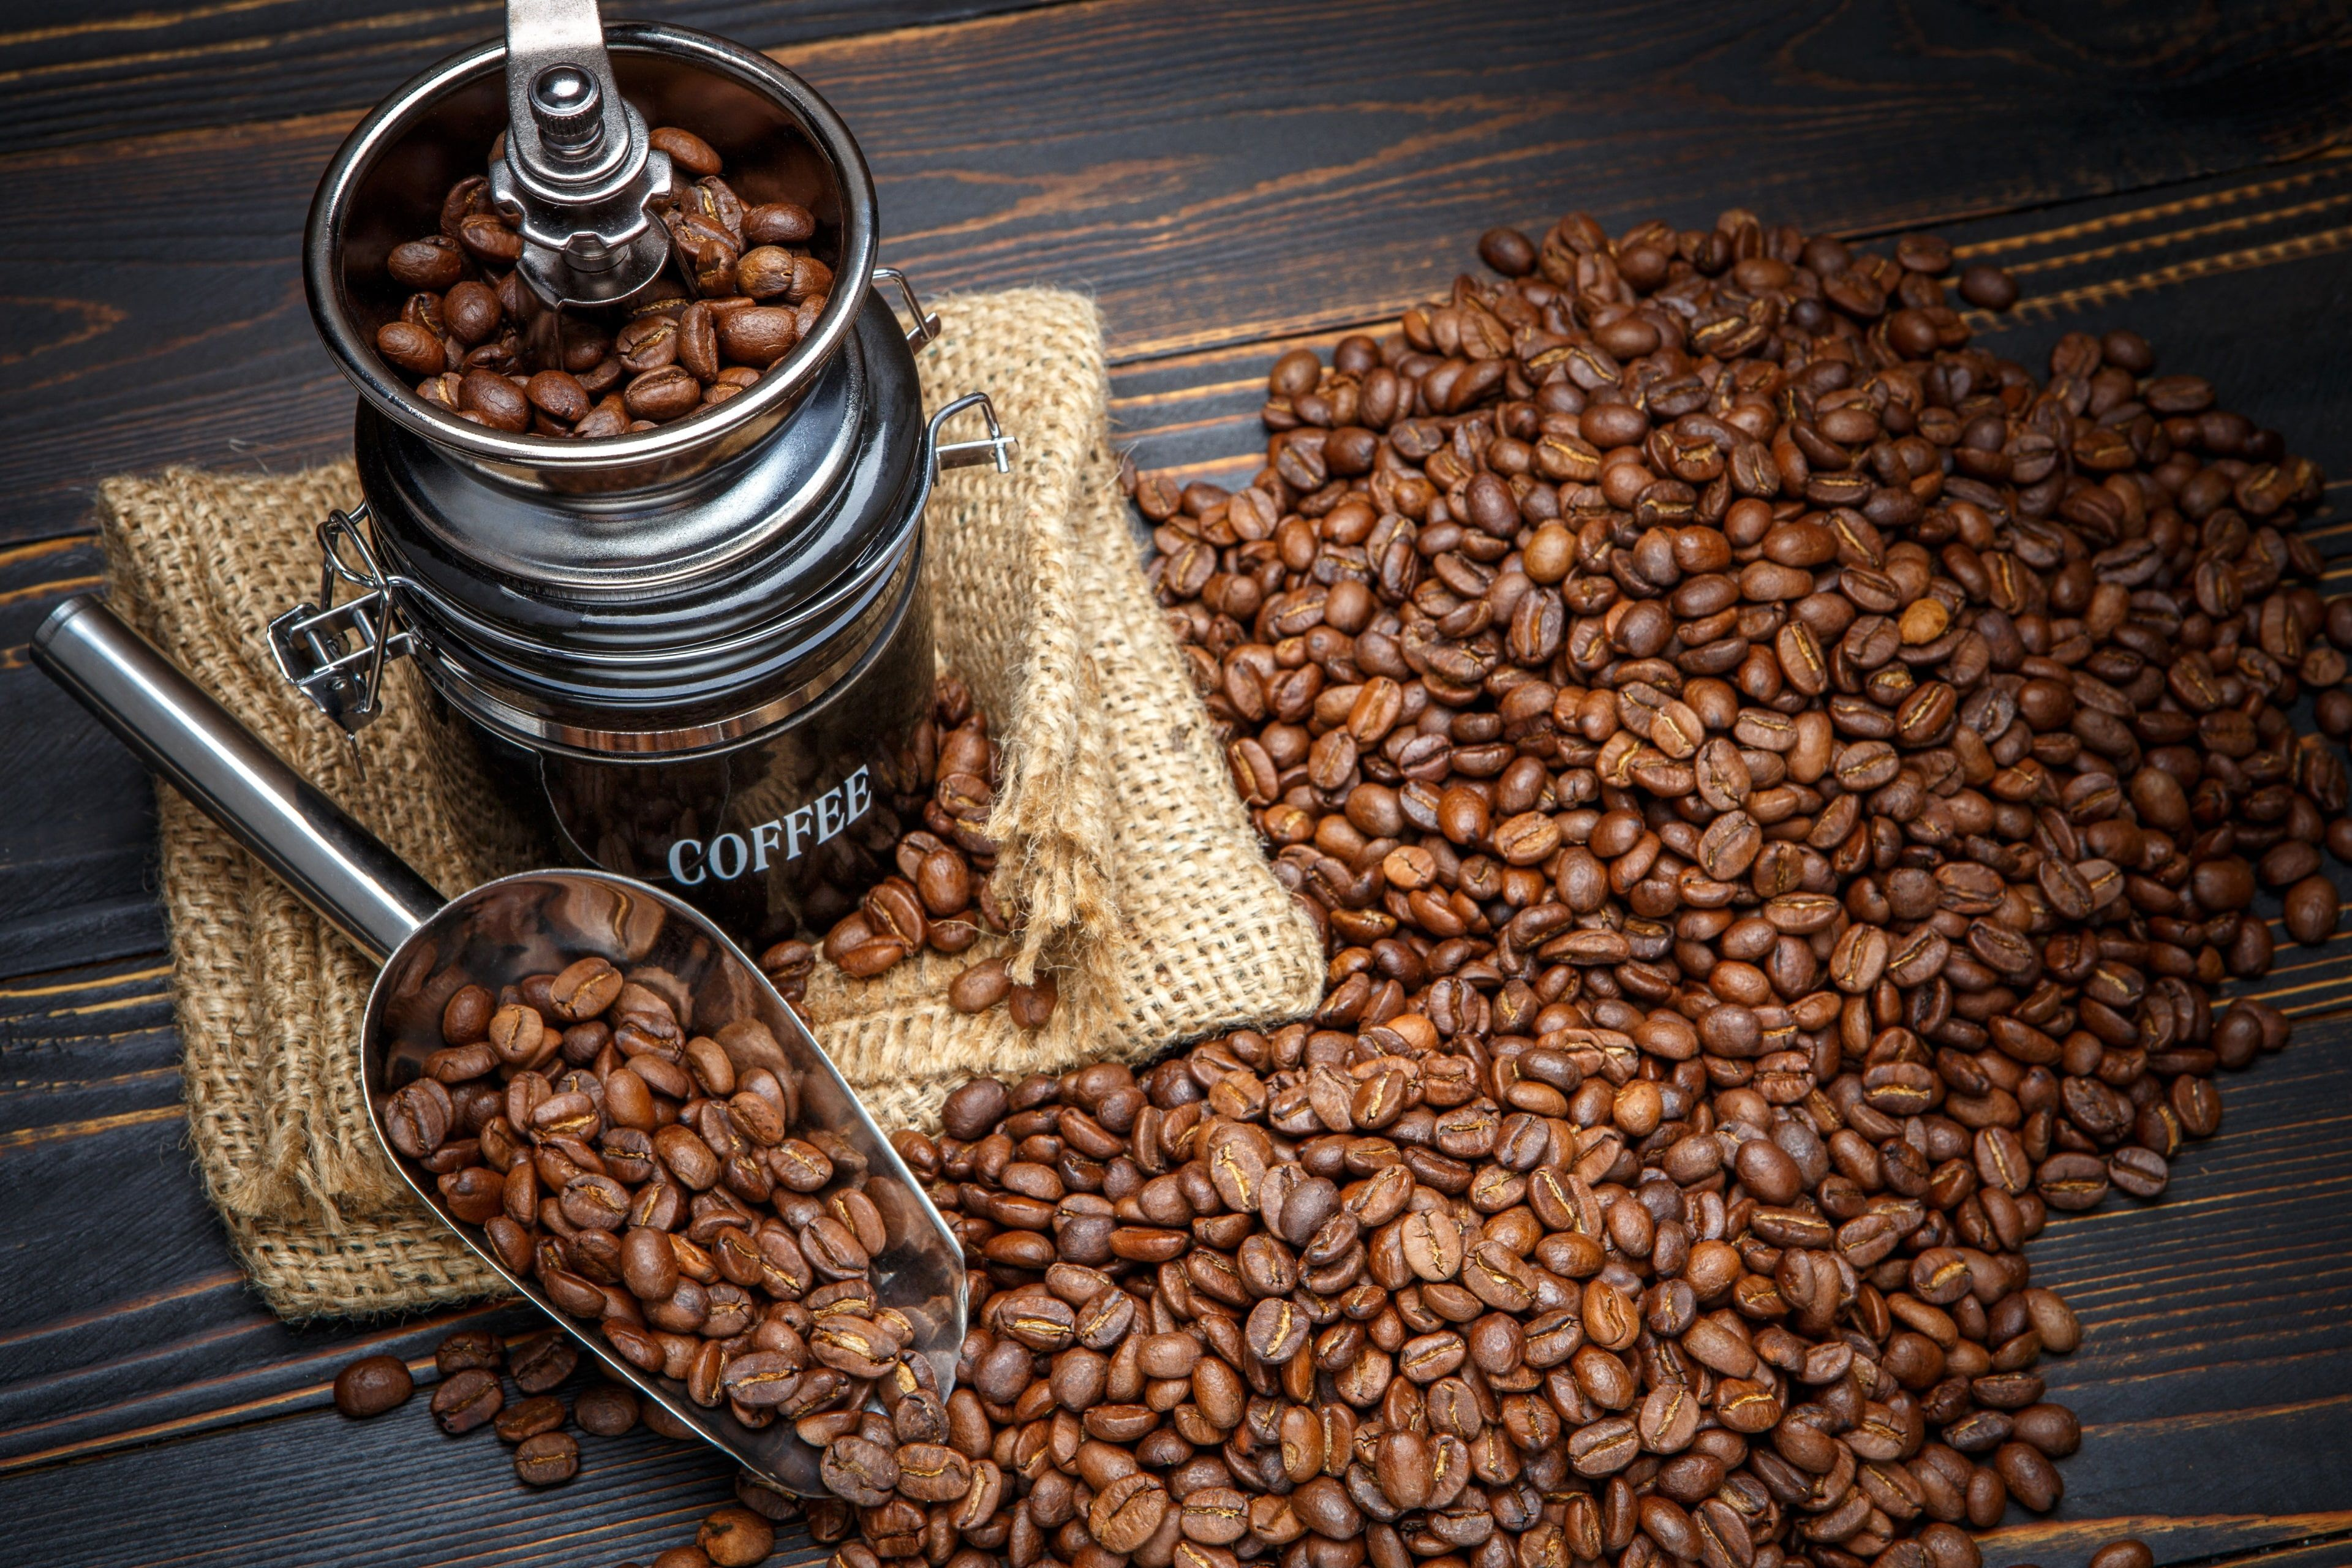 coffee 4k for download for pc 4K wallpaper hdwallpaper